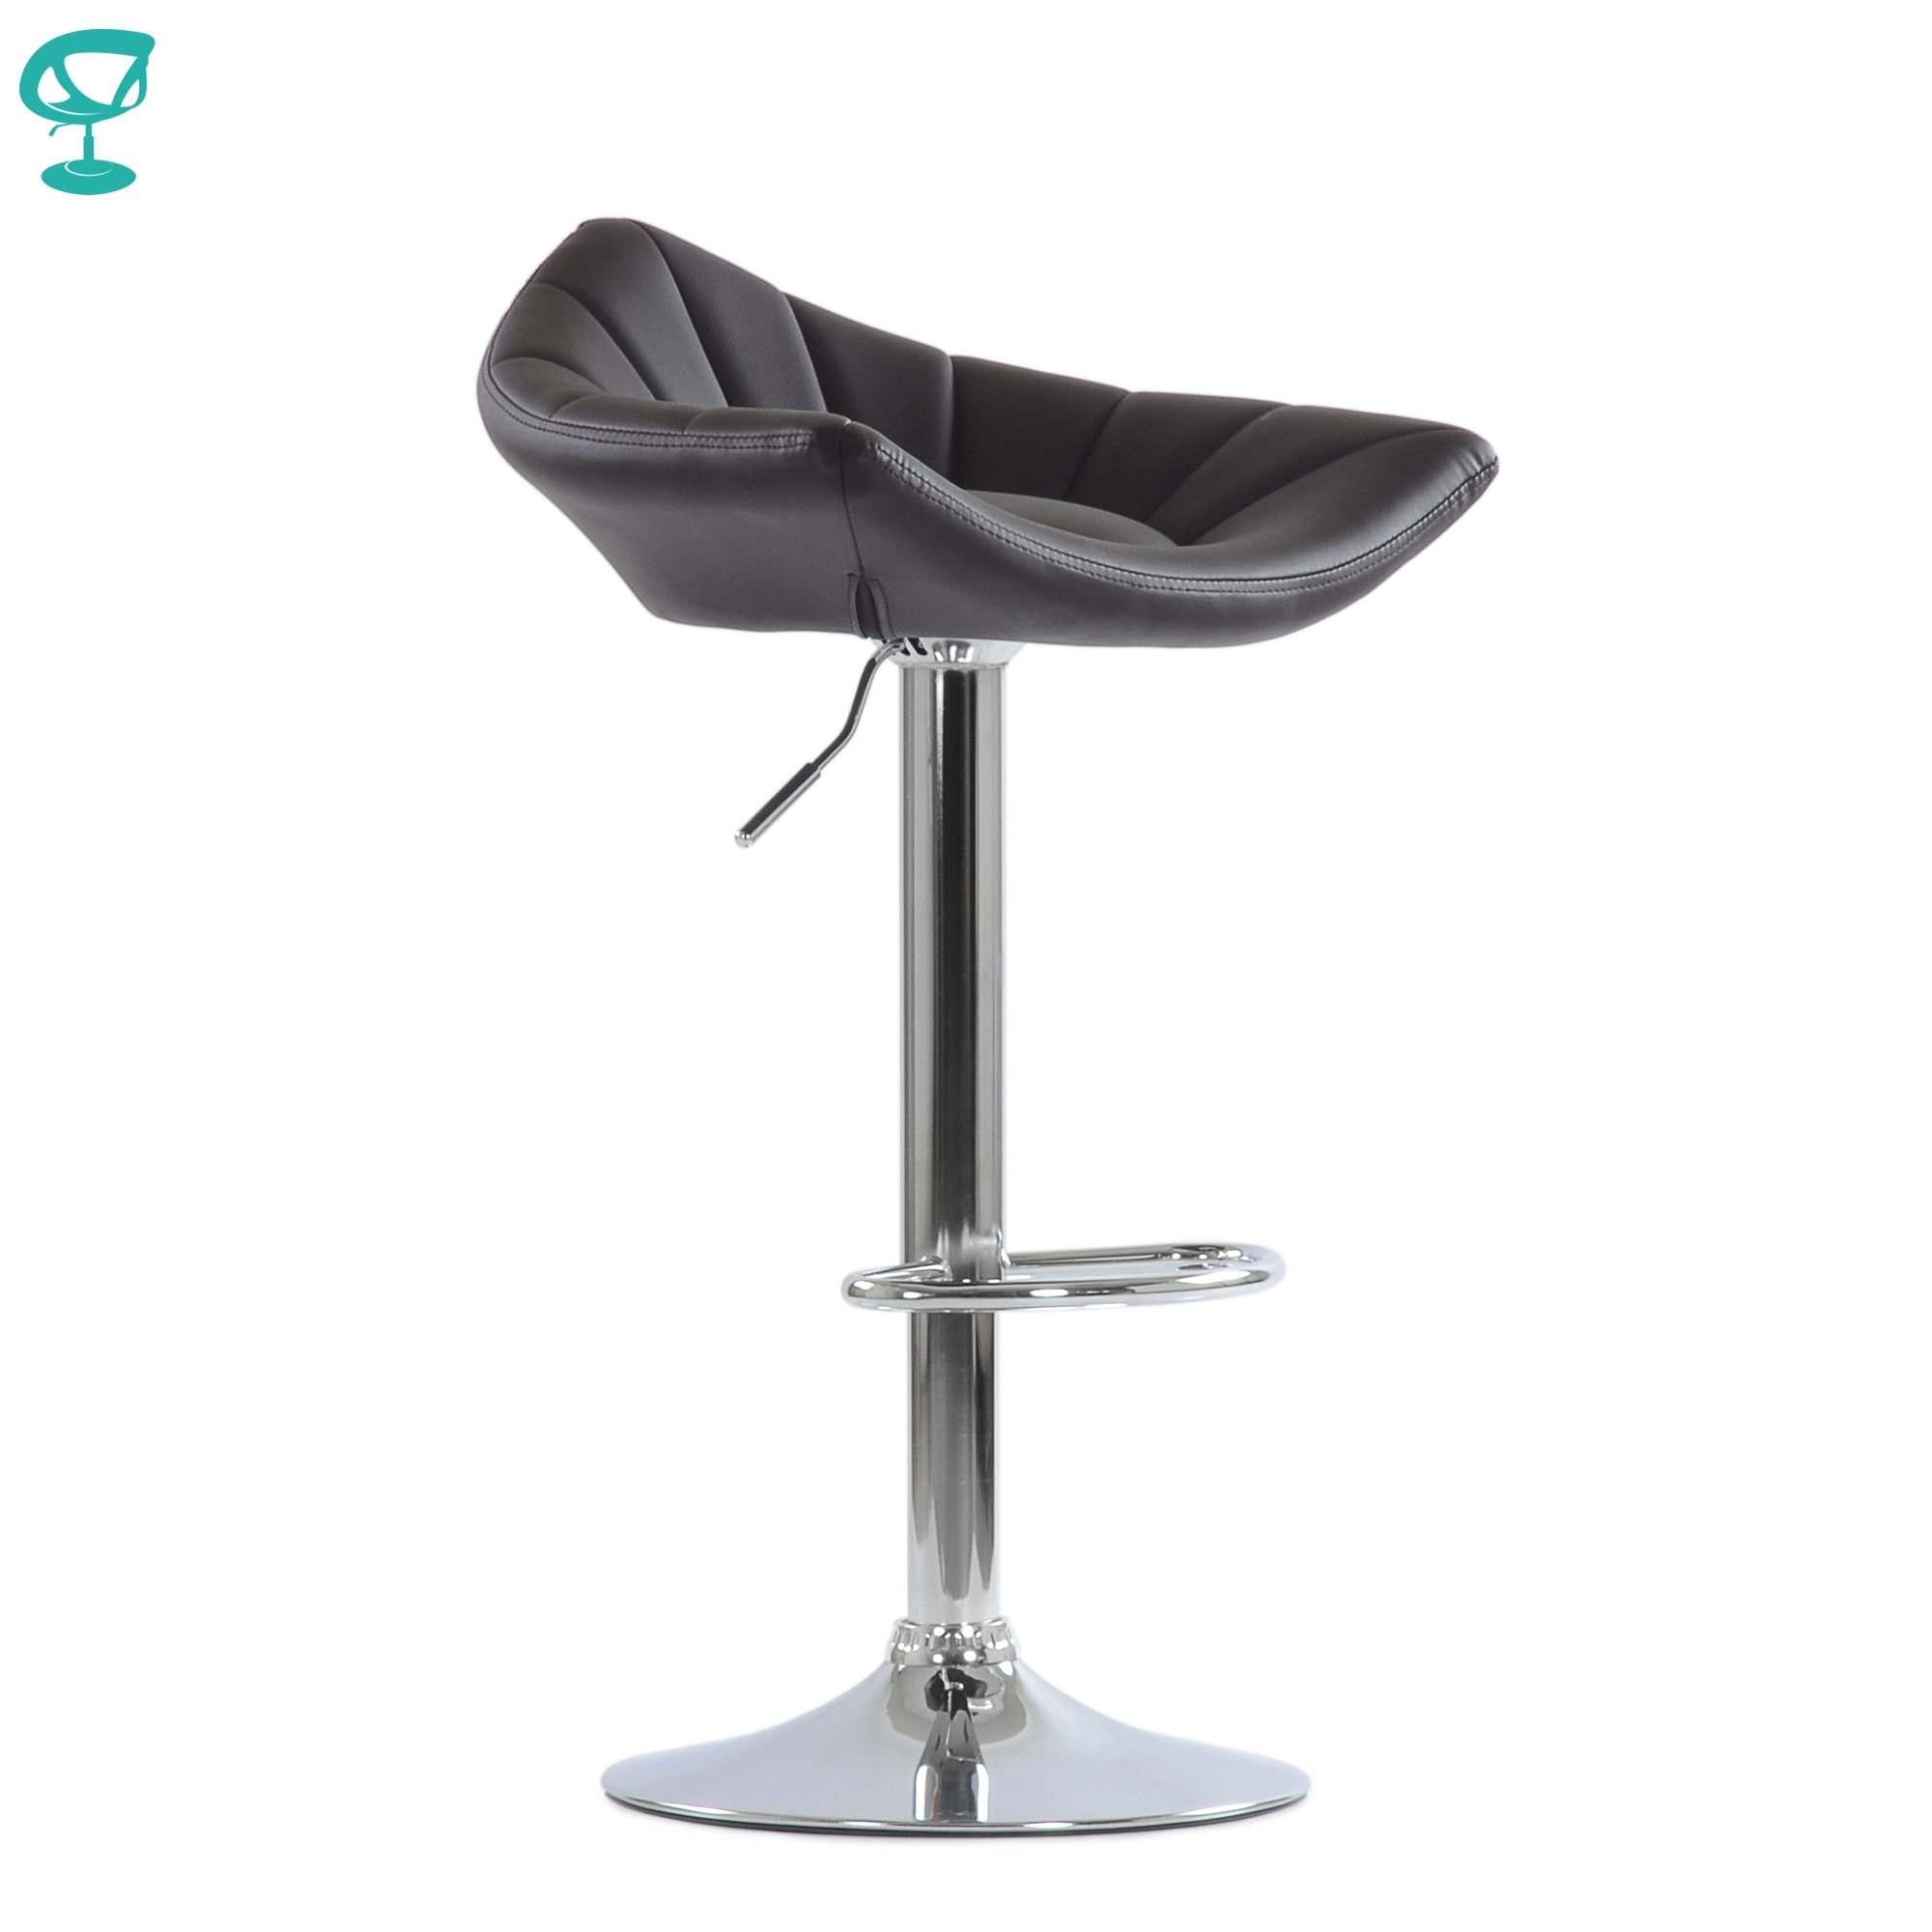 Barneo N-44 Brown Kitchen Bar Chair With Soft Seat Eco-friendly Leather Leg Chrome Chair Gas-lift For Master Makeup броубара